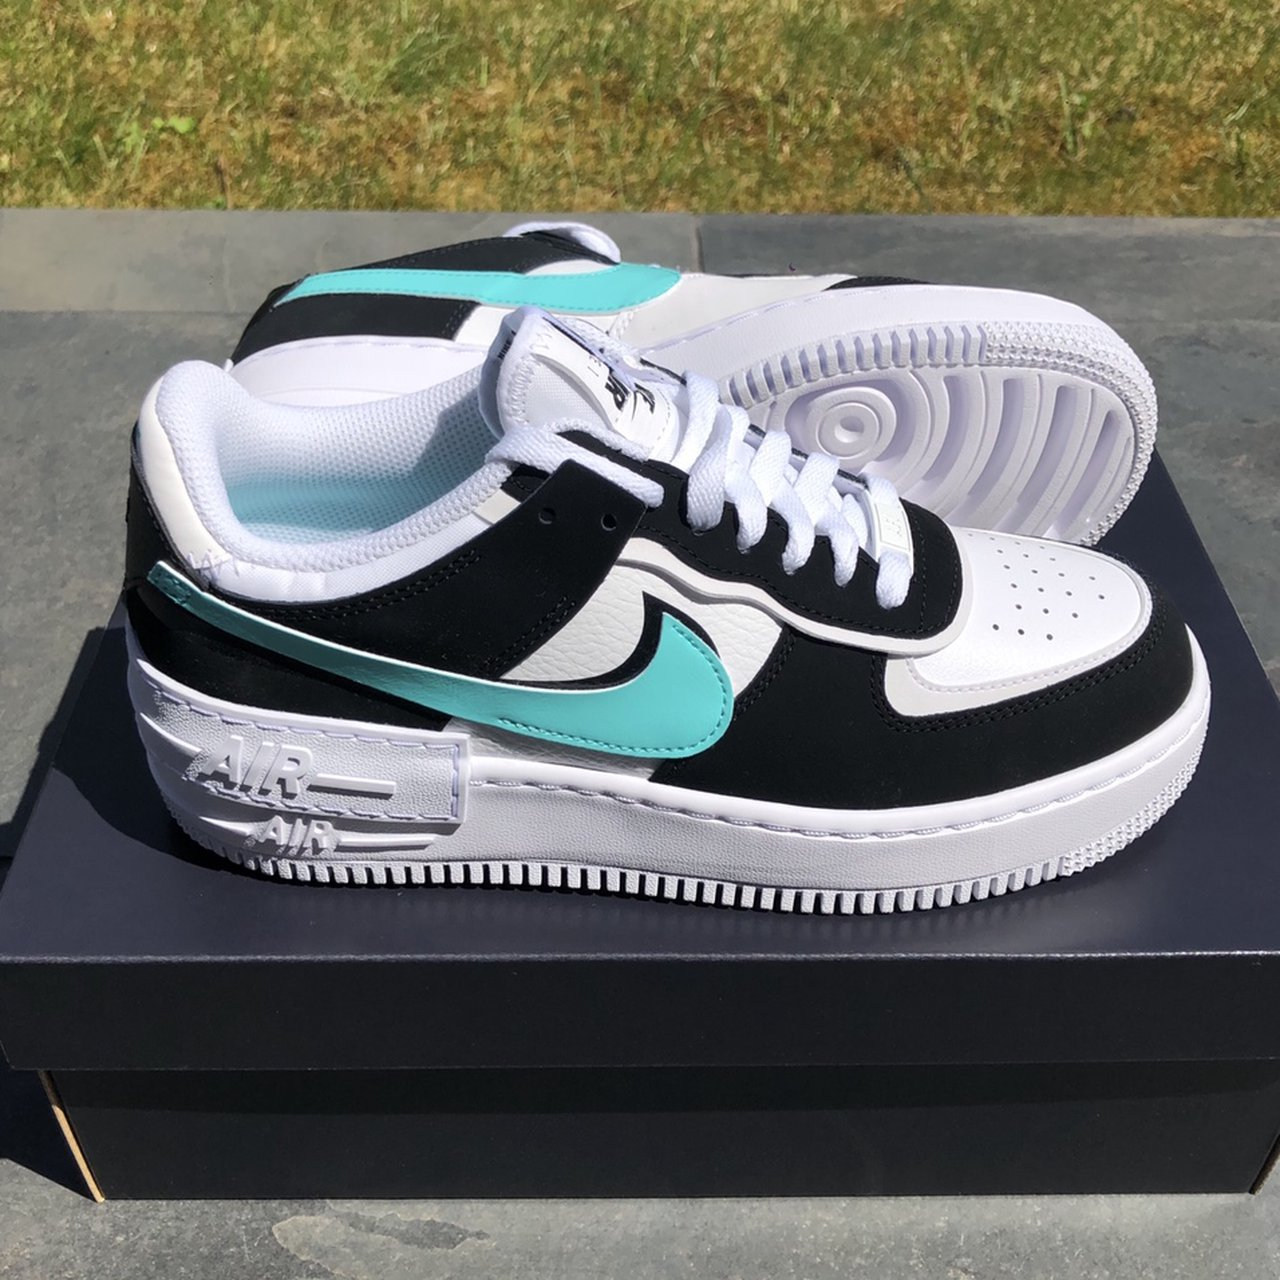 Nike Air Force 1 Shadow Trainers White Aurora Depop Padding at collar for a snug, comfortable fit chunky foam sole with signature air cushioning nike air force 1 shadow trainers